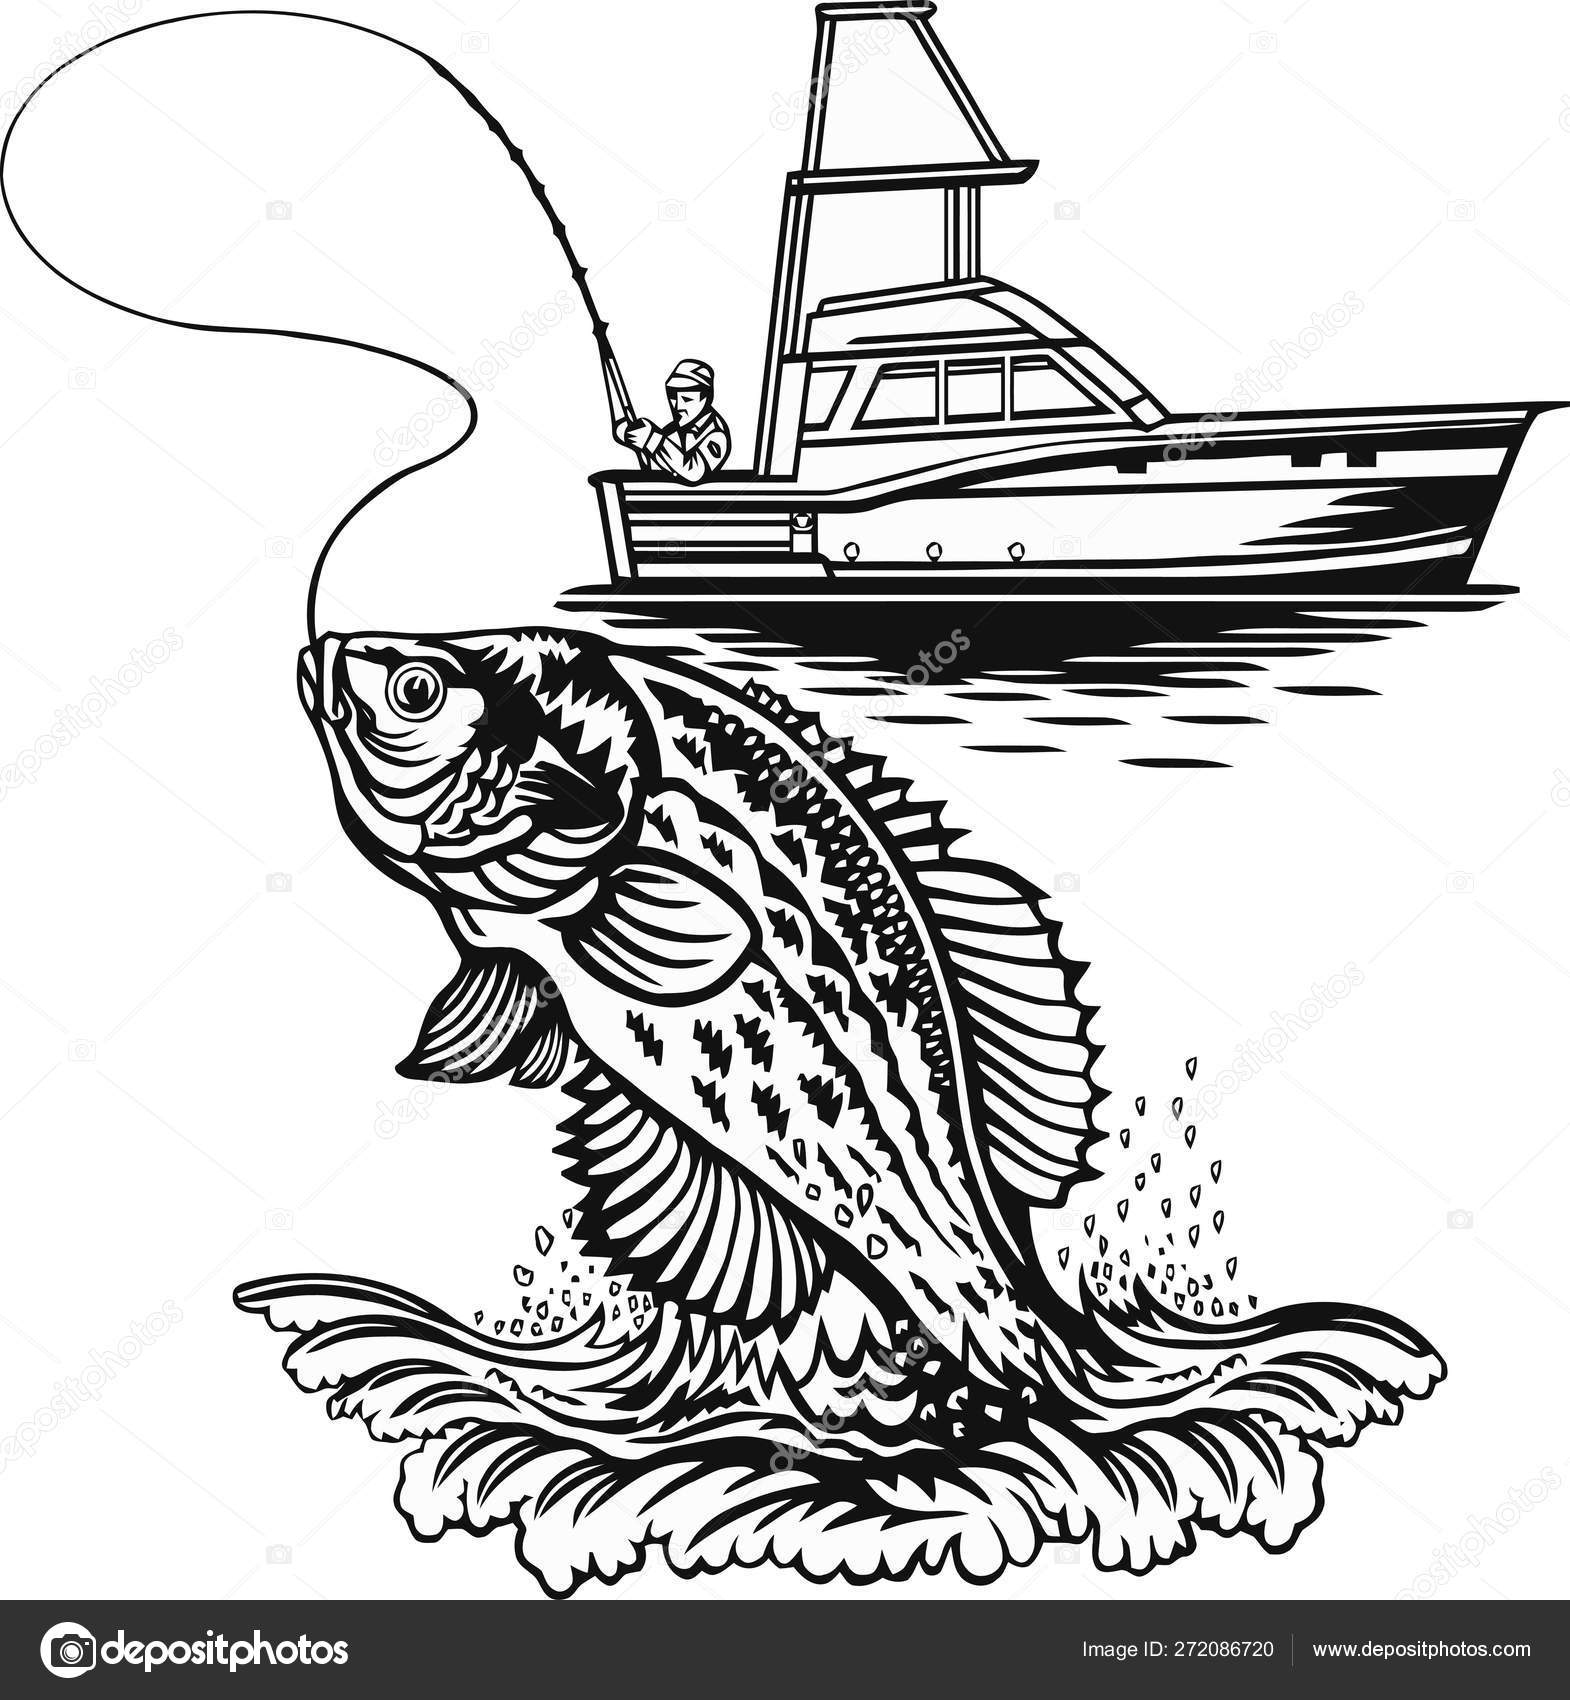 Clipart Crappie Fisherman And Crappie Fish Freshwater Sport Fish Stock Vector C Digital Clipart 272086720